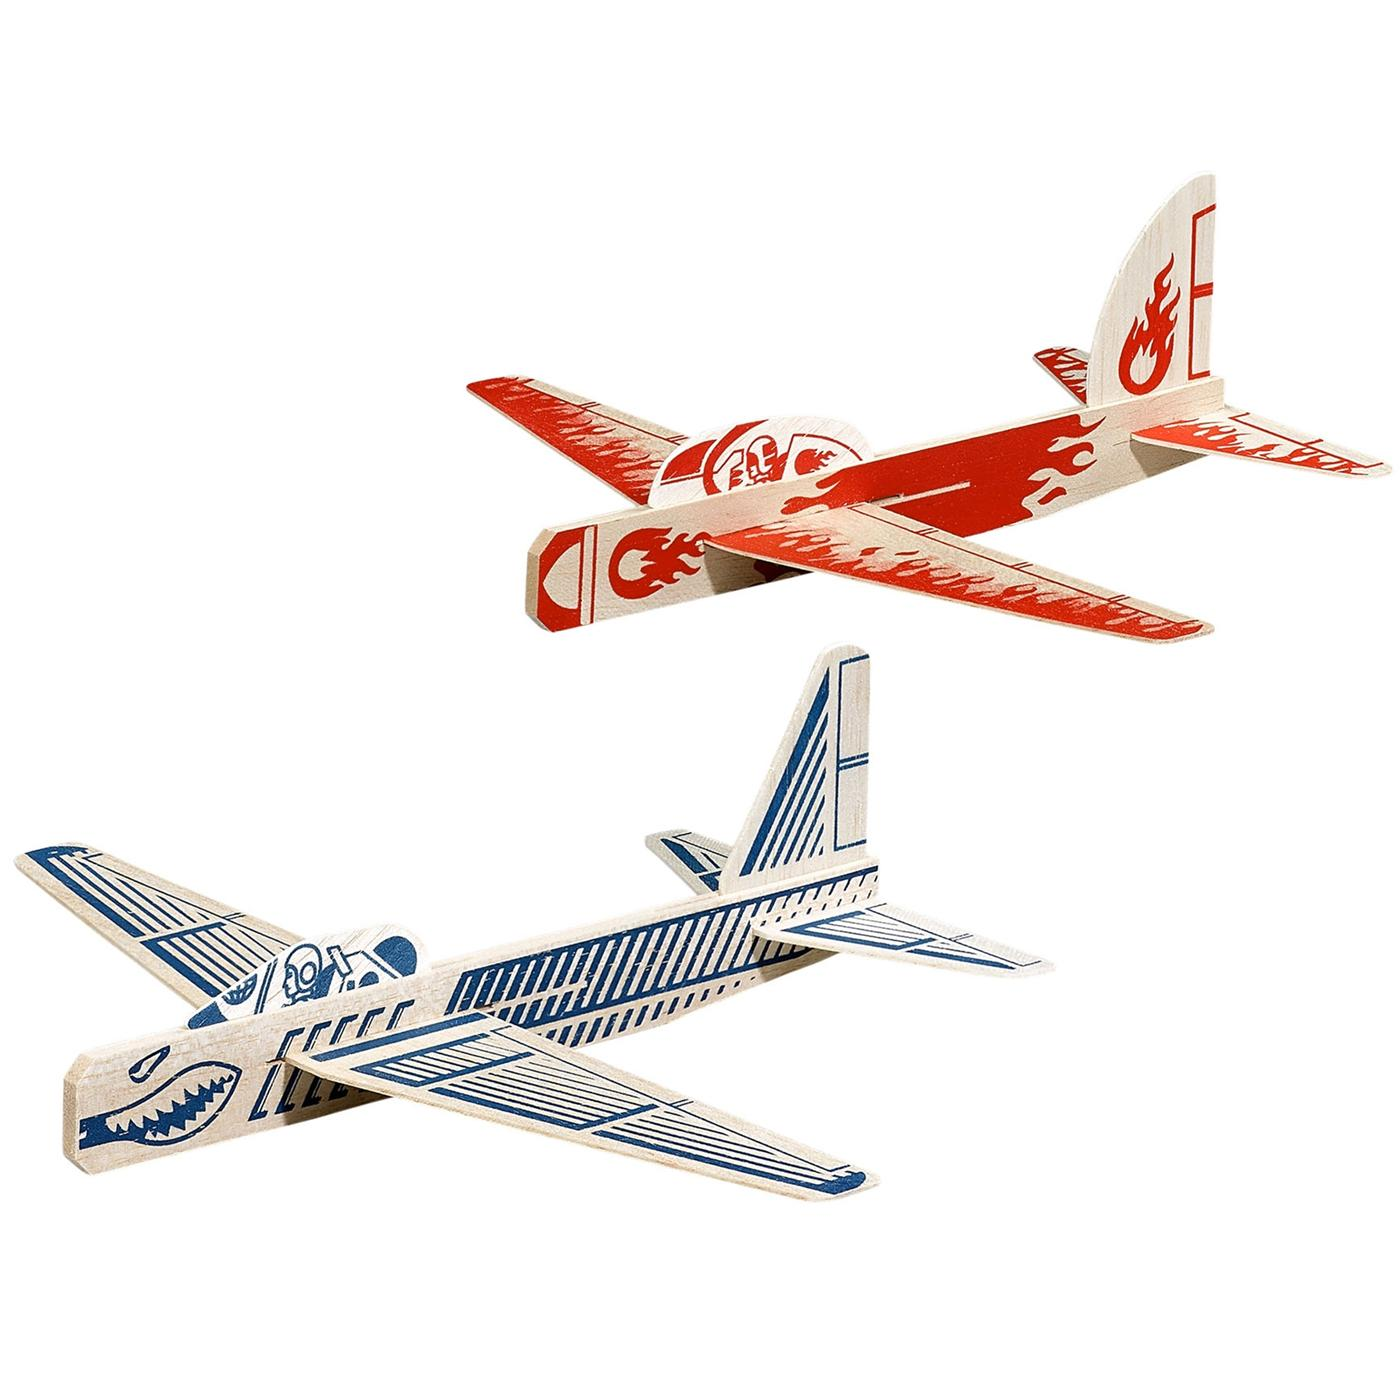 RIDLEYS Retro Vintage Racing 50s Glider Planes Set